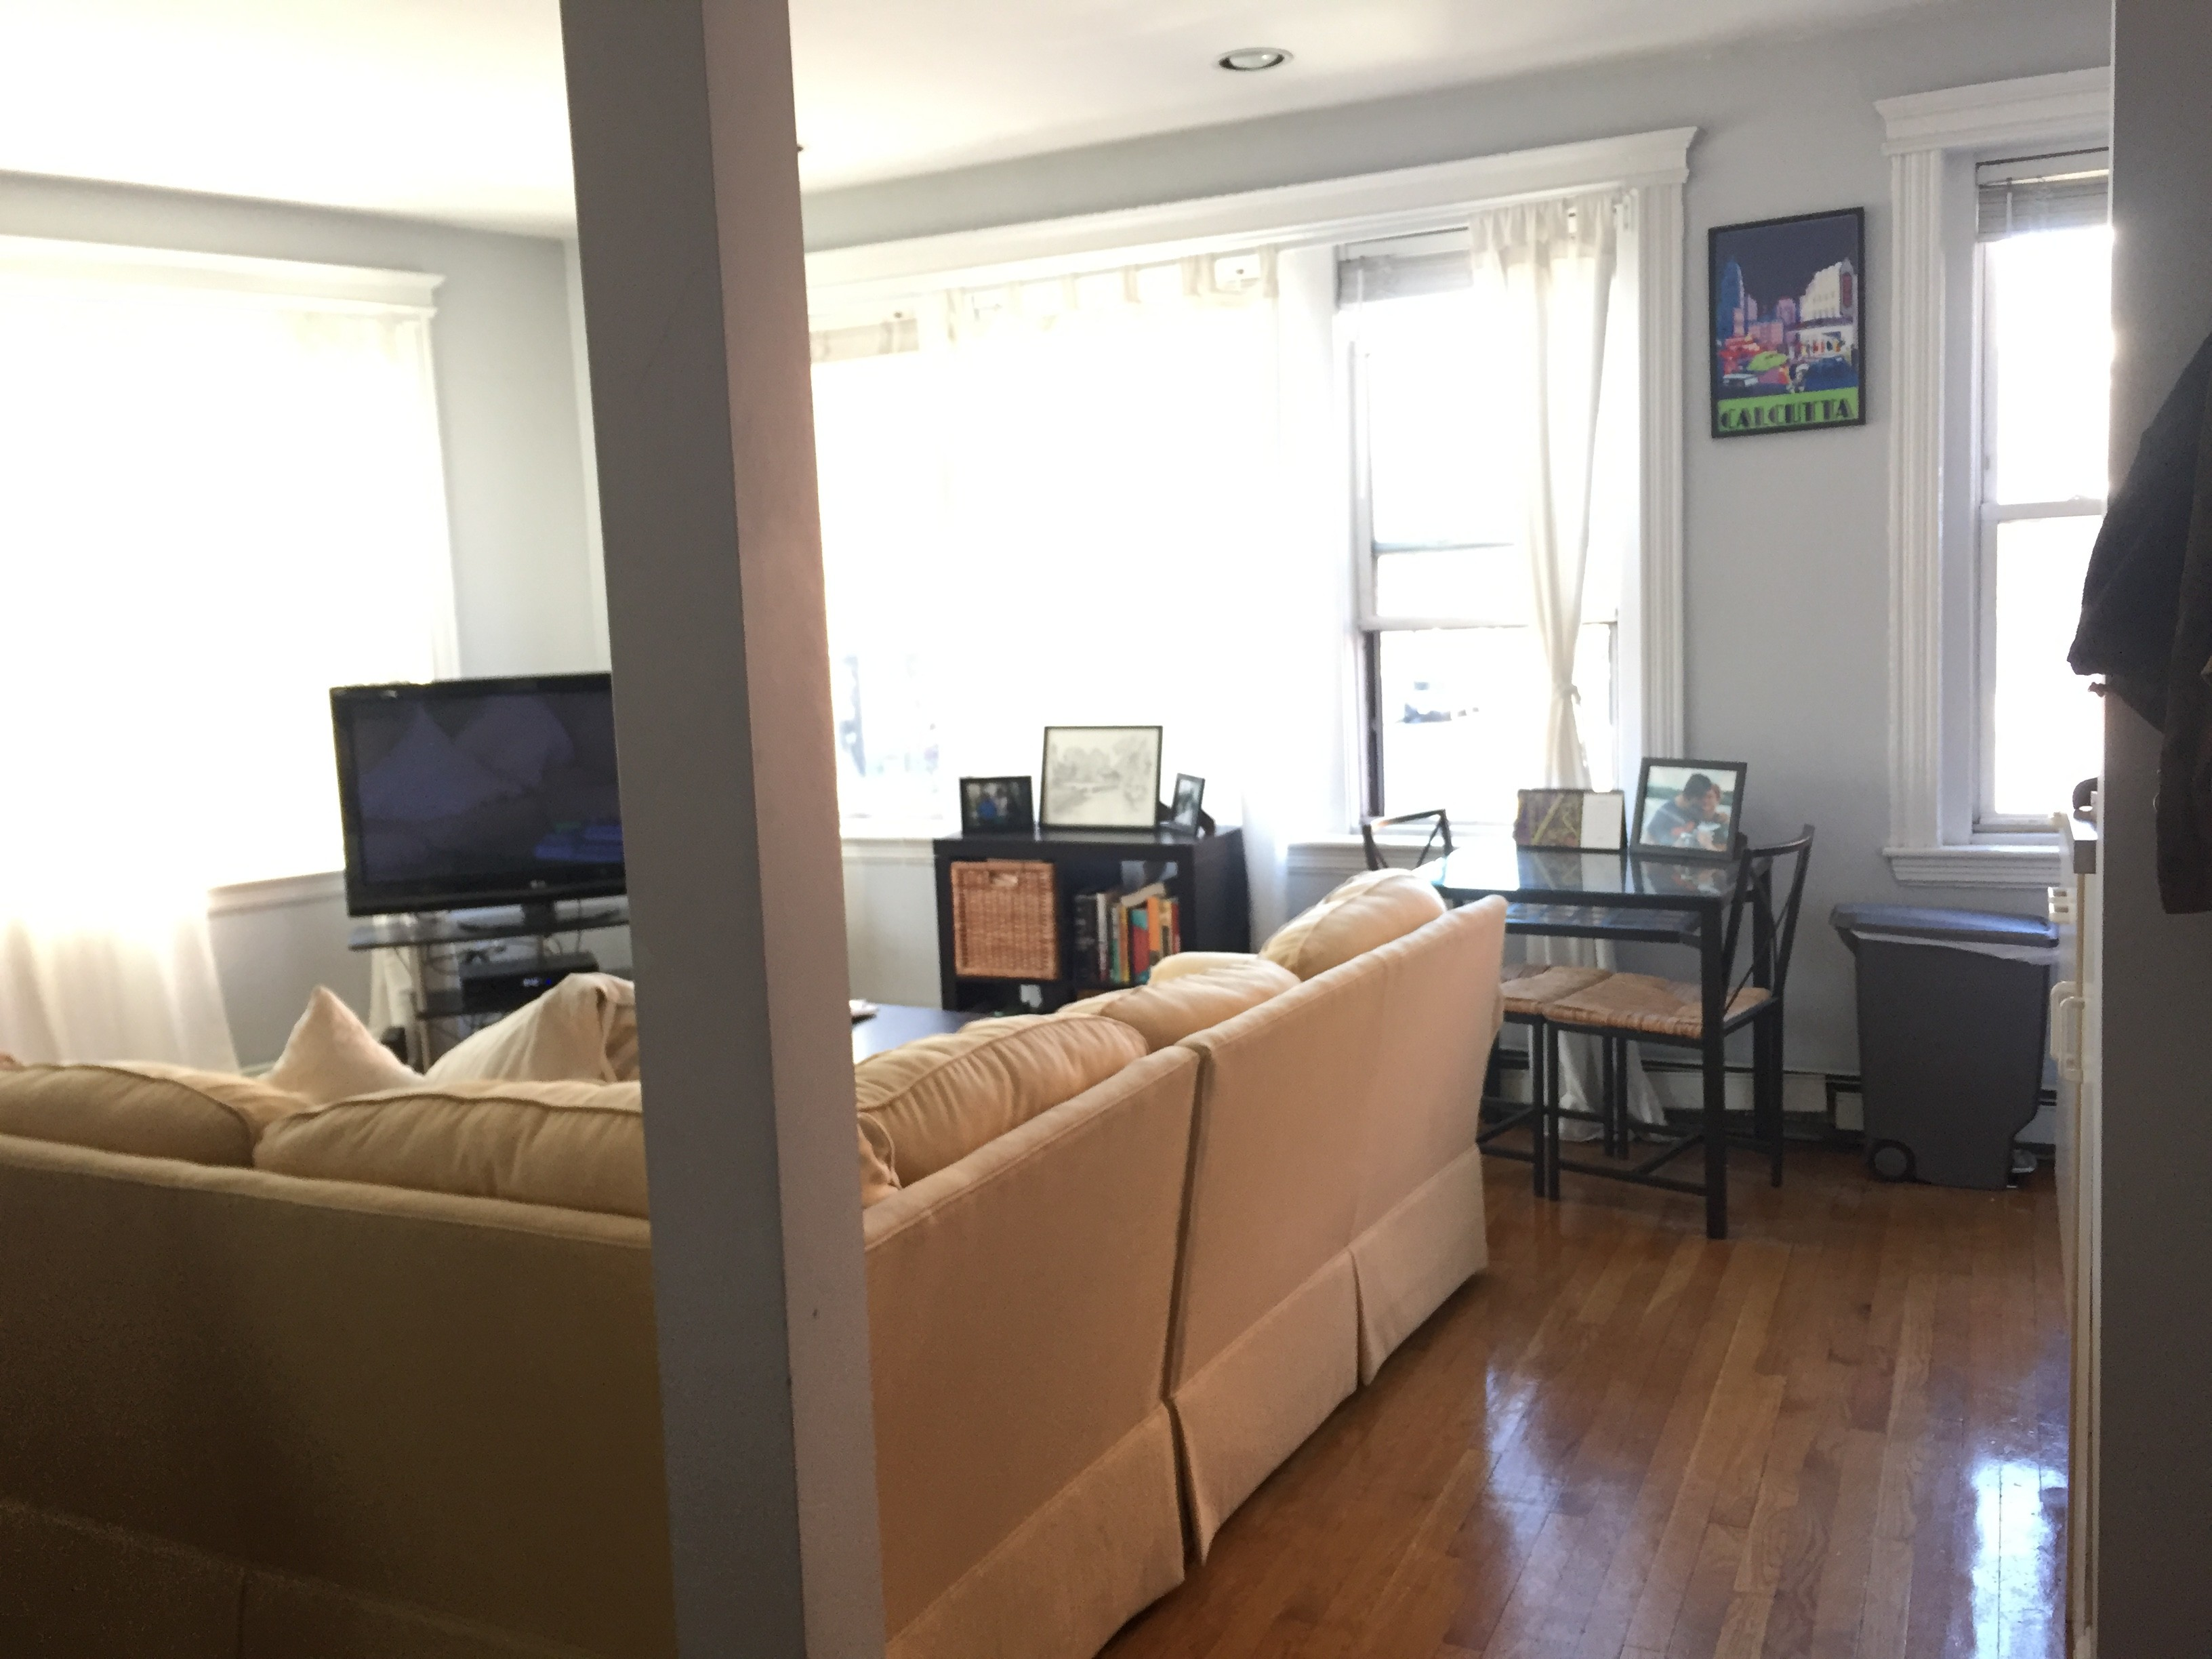 520 522 Tremont Street Boston Ma 02118 1 Bedroom Apartment For Rent For 2 395 Month Zumper